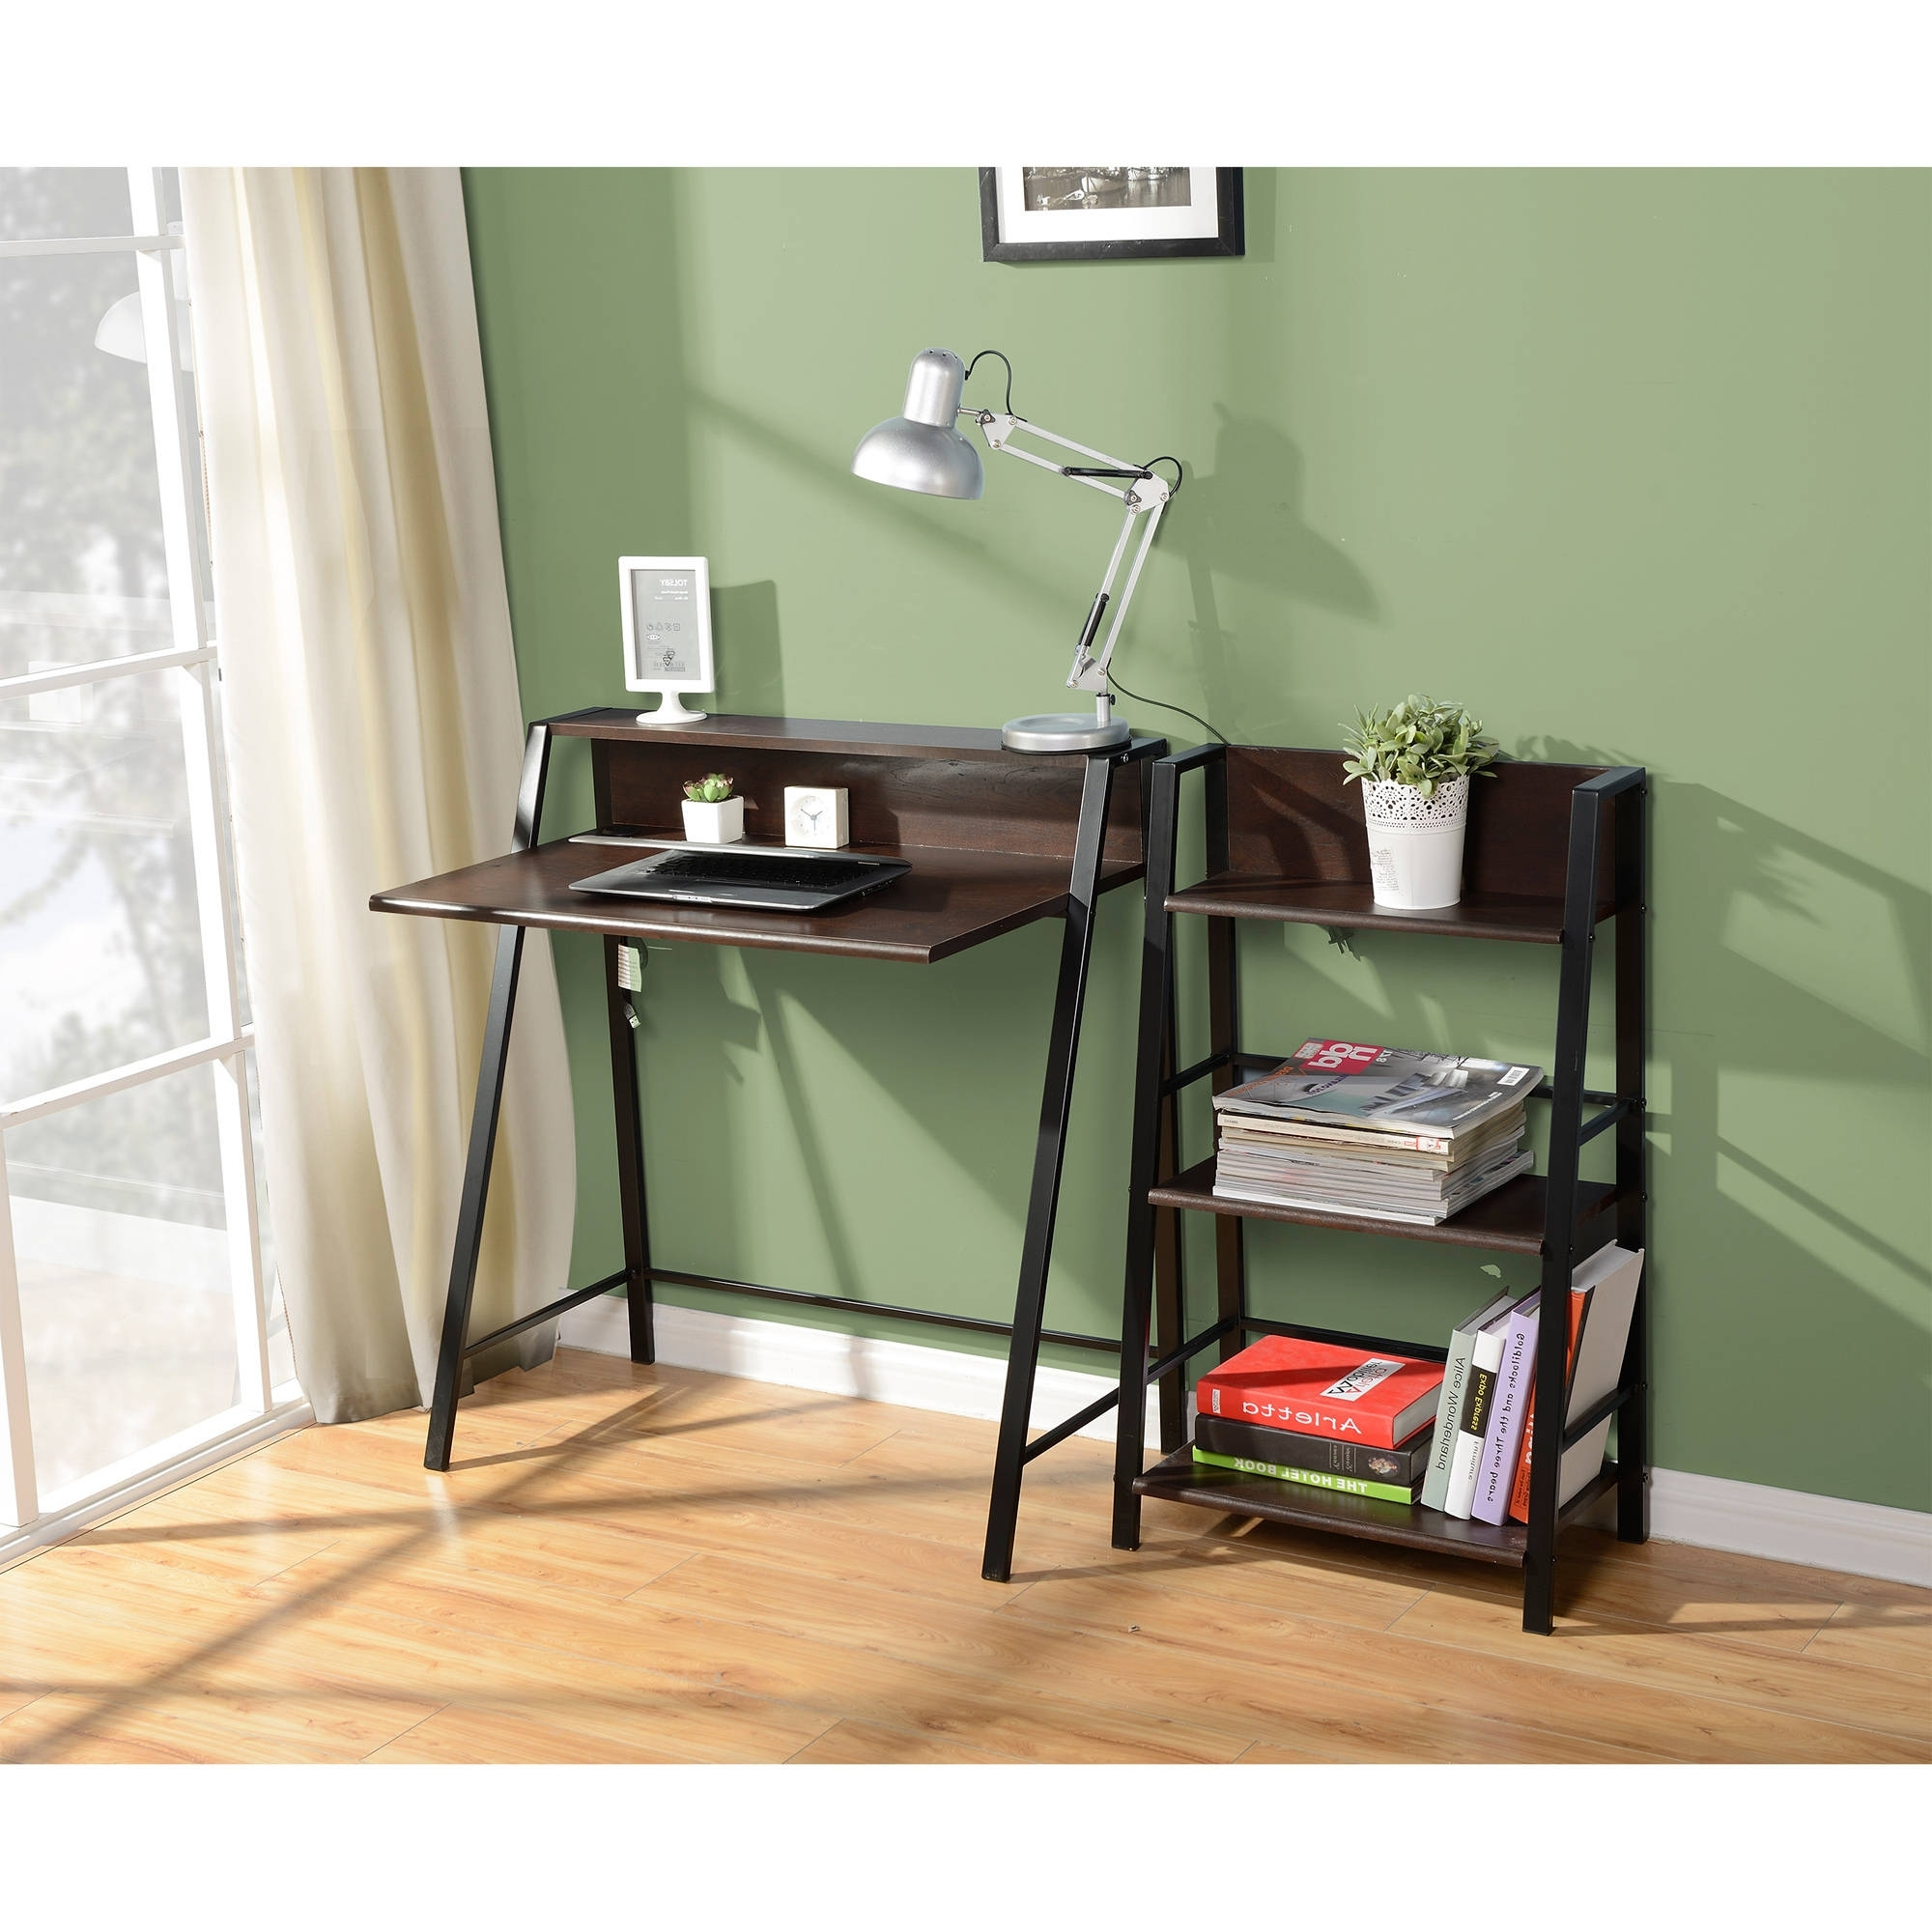 Well Known Mainstays 3 Shelf Bookcase, Multiple Finishes – Walmart In 3 Shelf Bookcases Walmart (View 15 of 15)